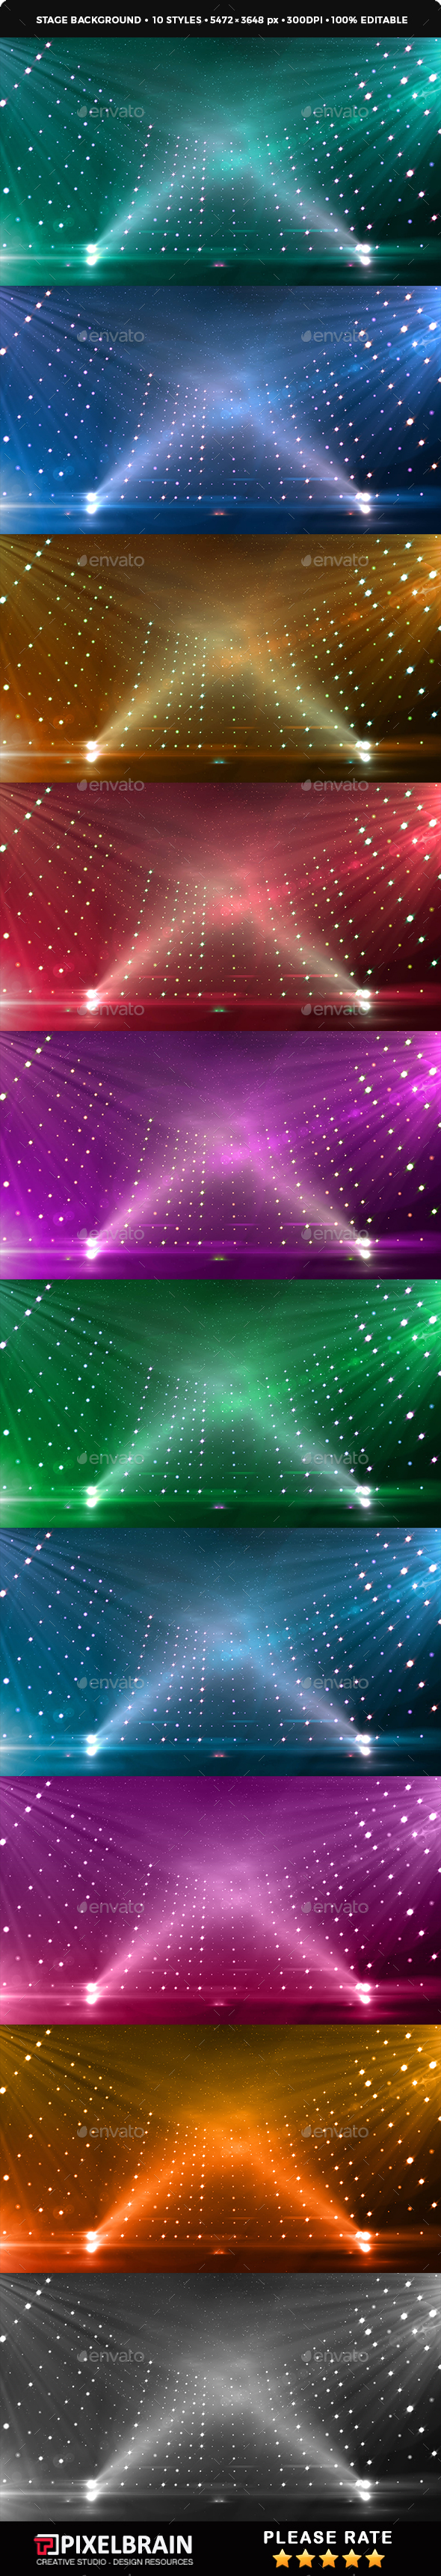 Revolving Stage Background - Backgrounds Graphics